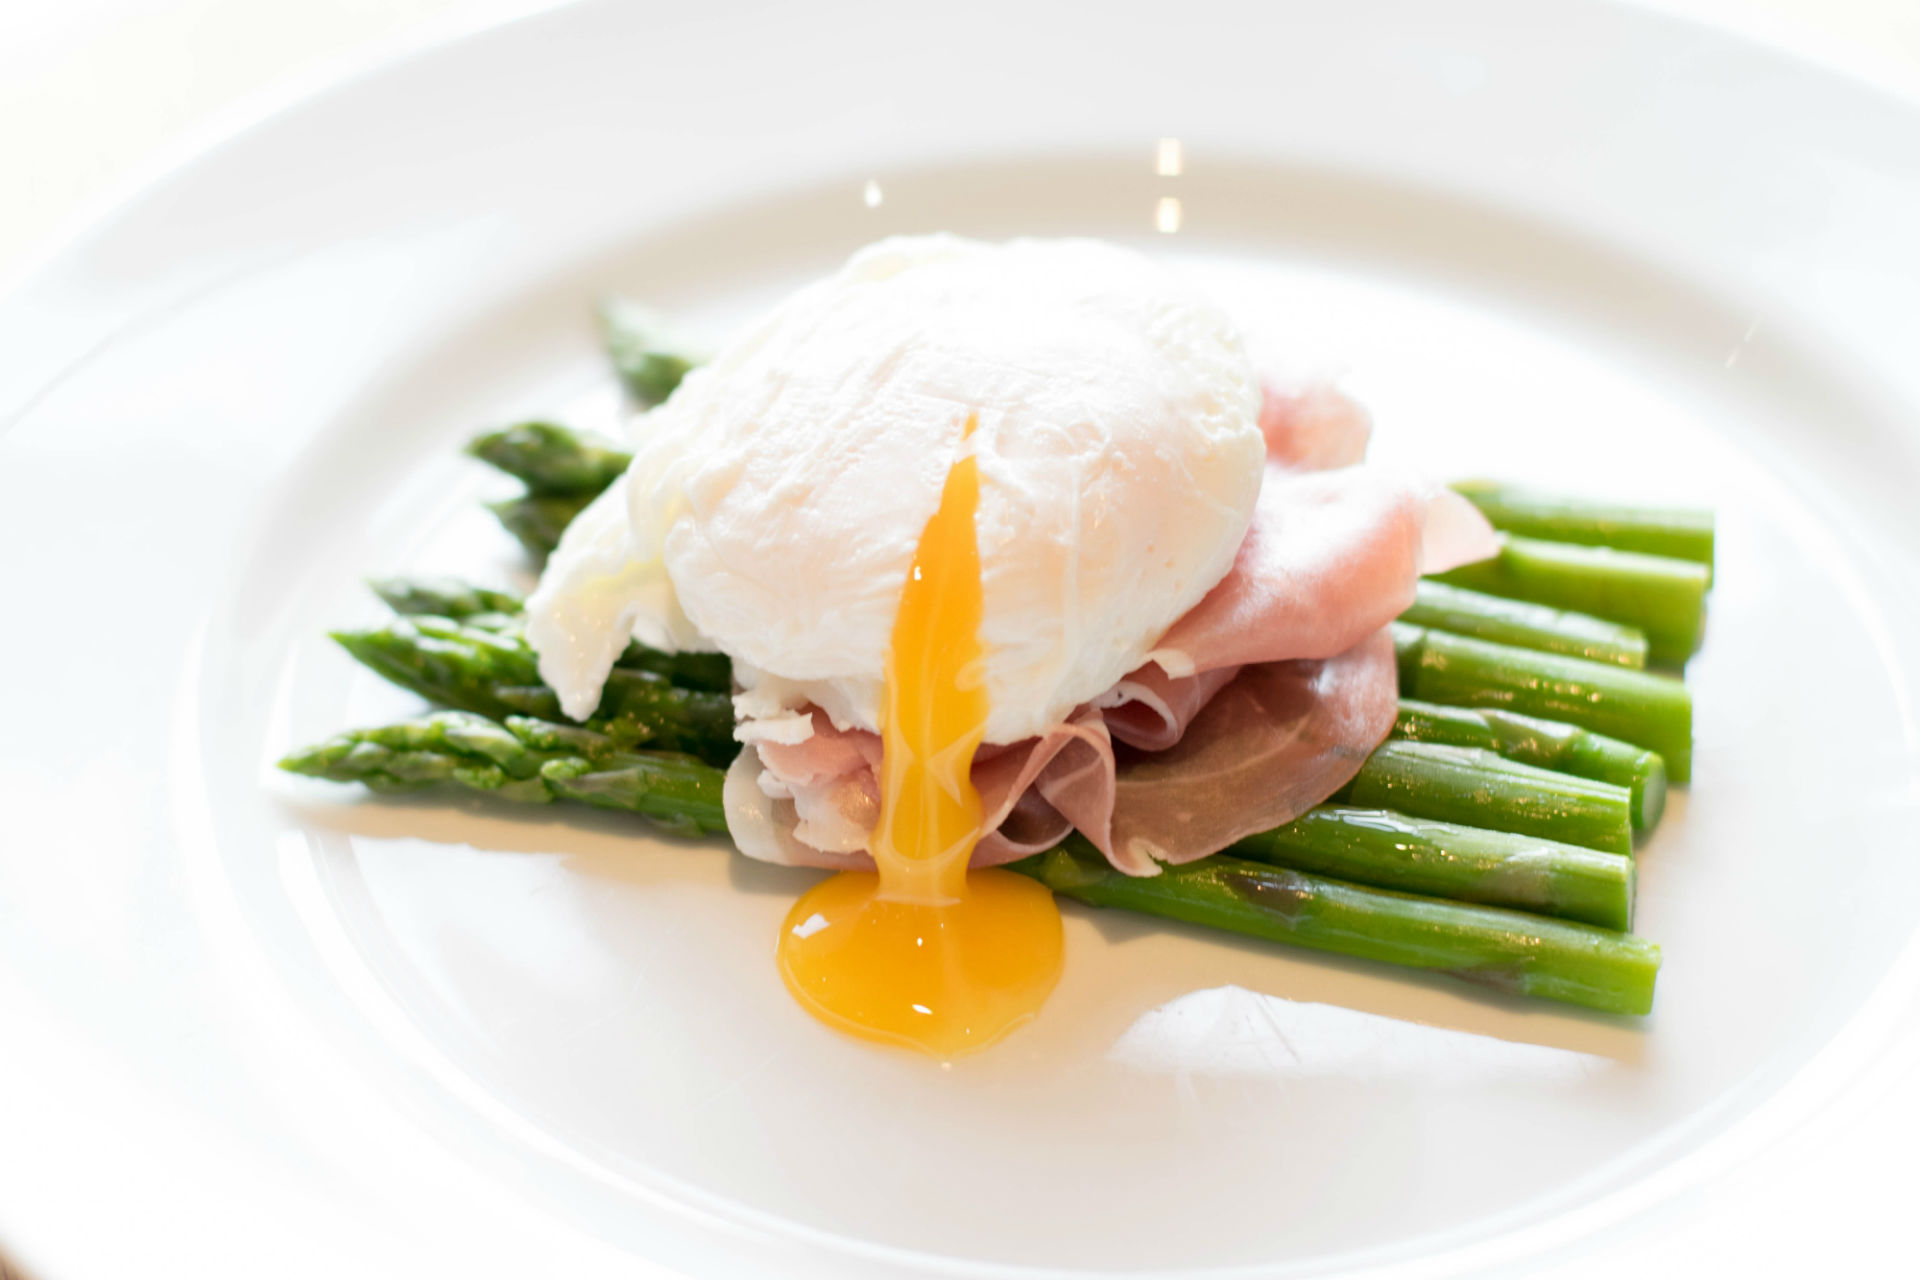 Egg dish from Aureum Catering in Gloucestershire